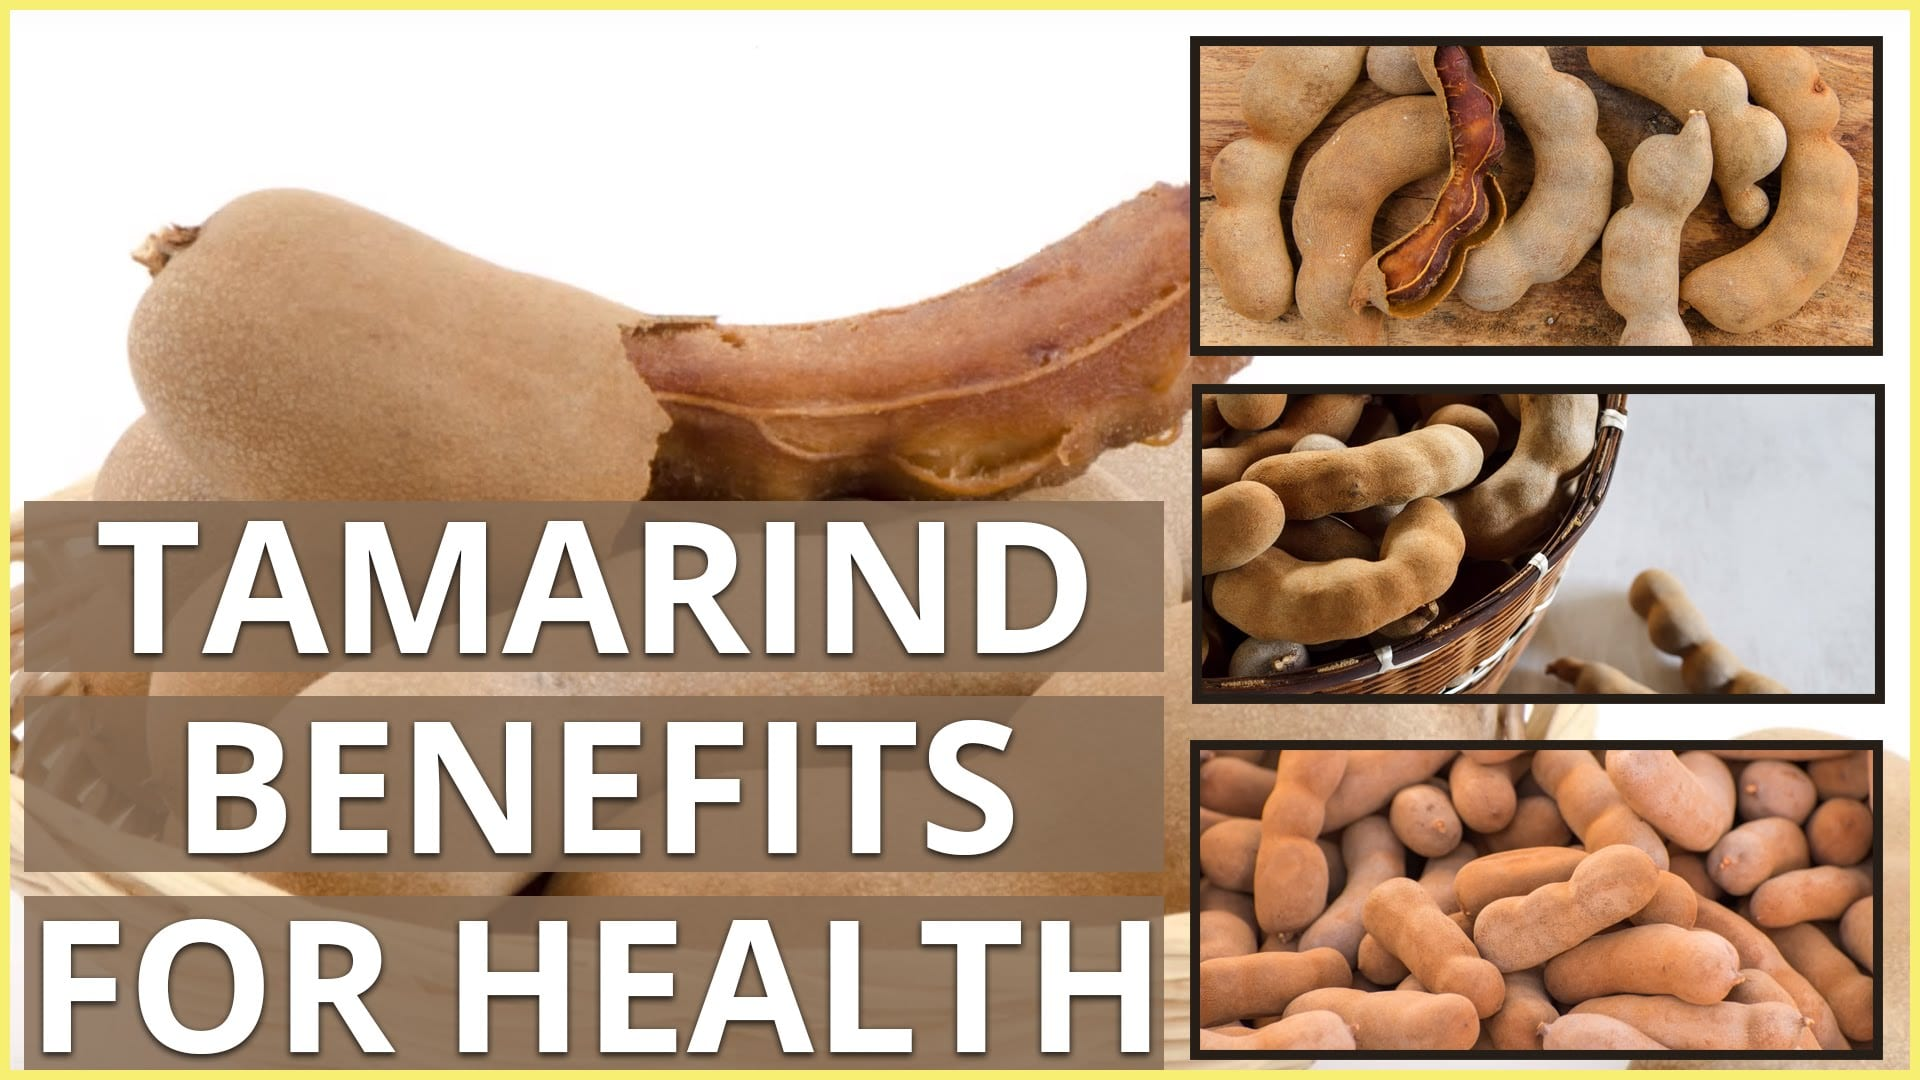 Wholesome properties of Tamarind